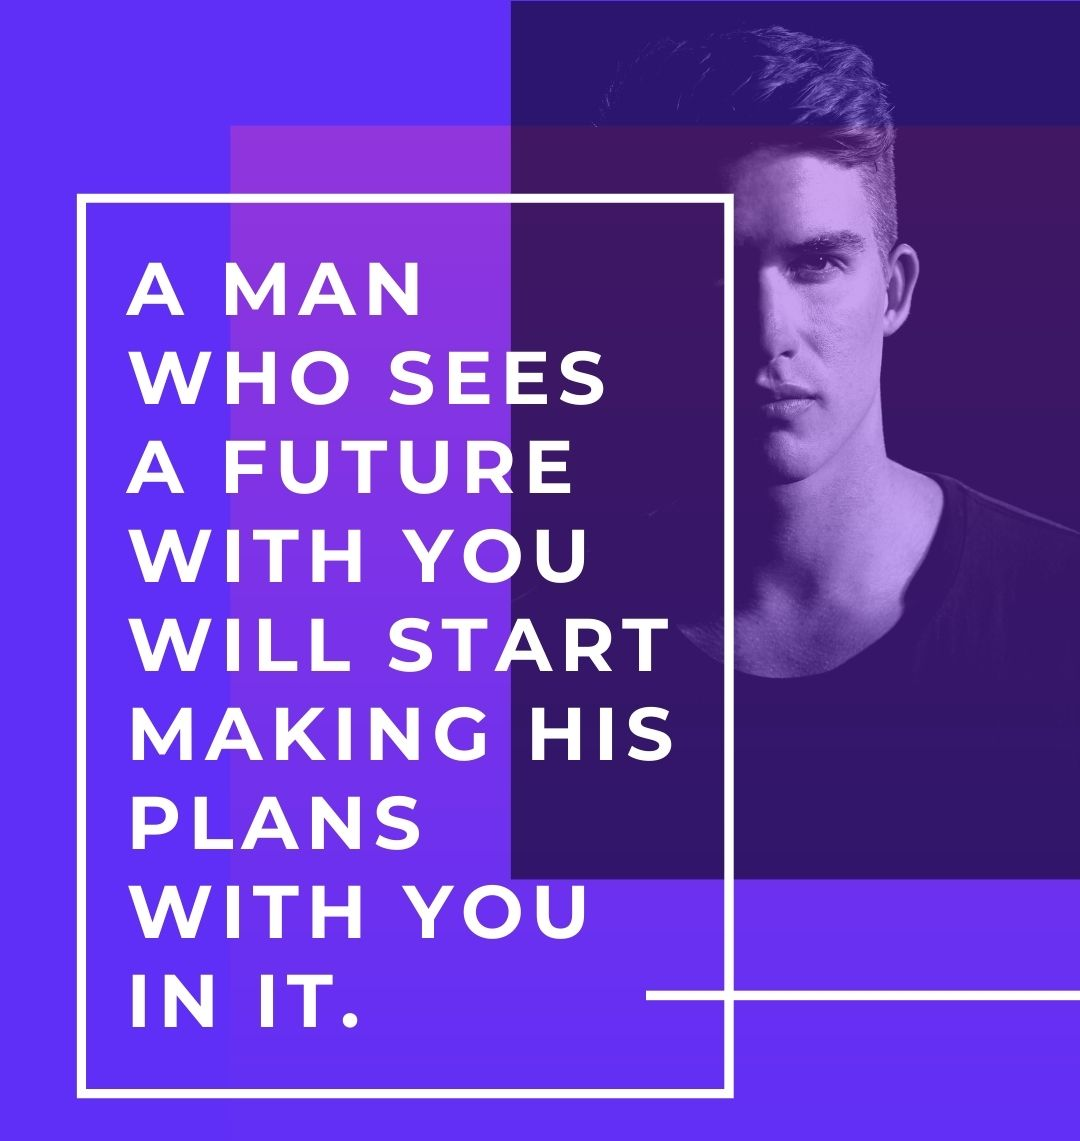 A man who sees a future with you will start making his plans with you in it.